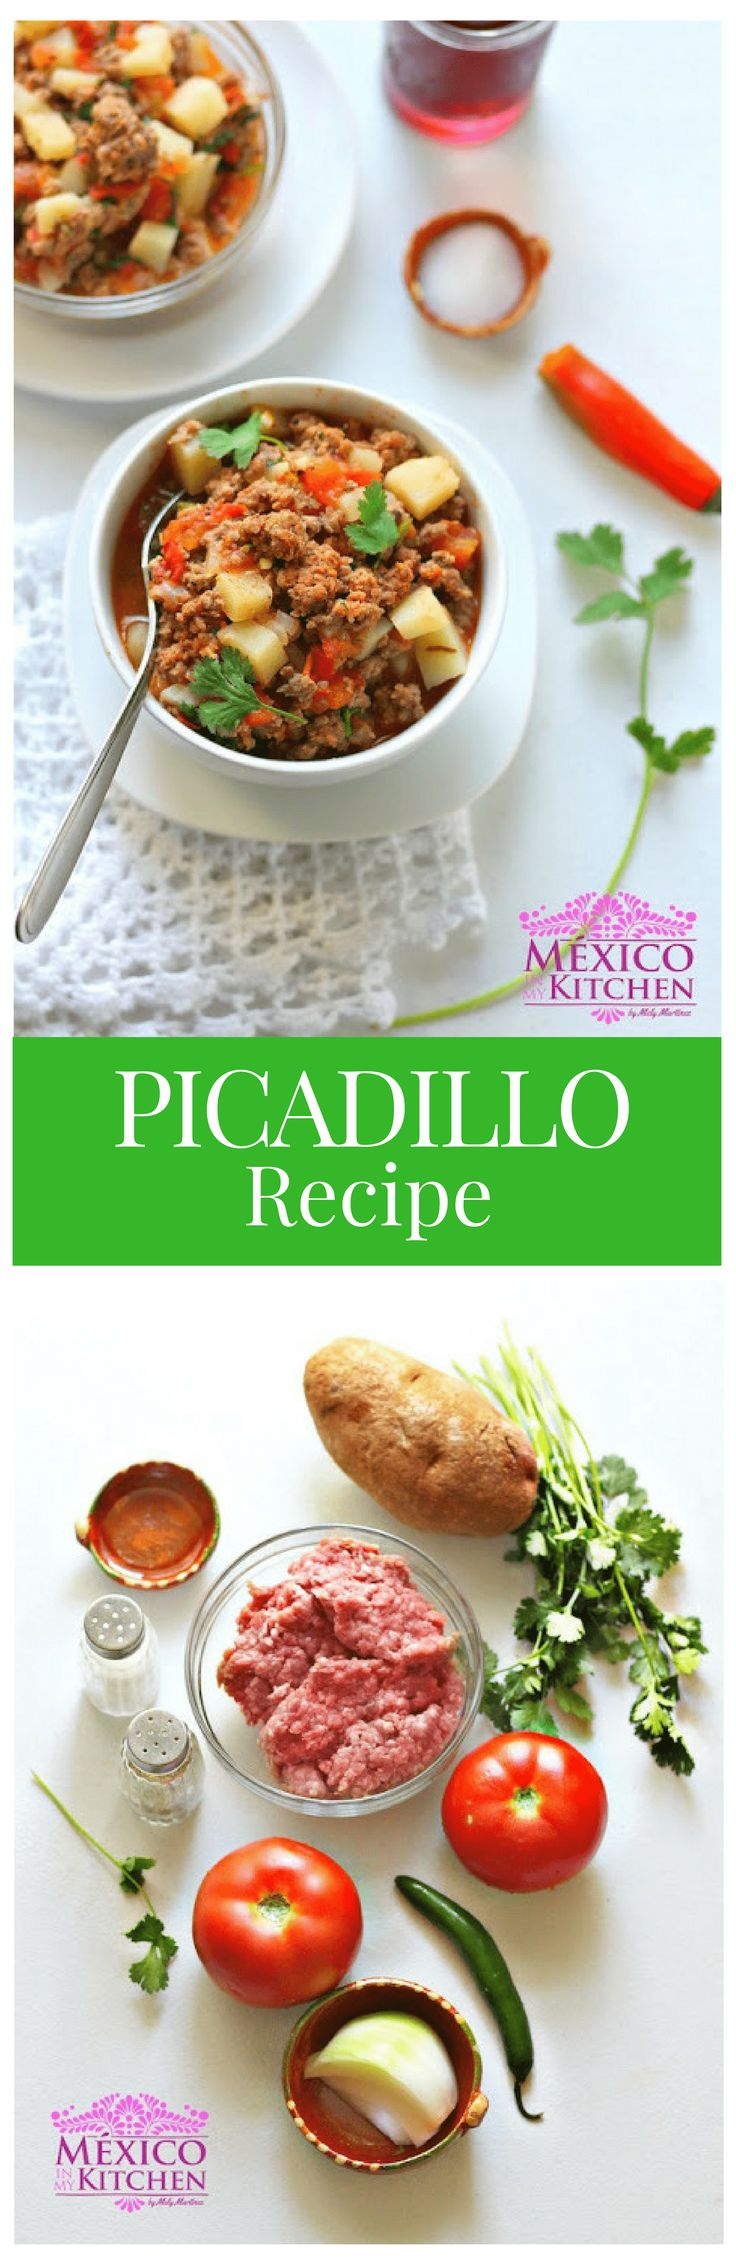 Picadillo Recipe │This is just a basic recipe that will allow you to make your own version at home, one that you can claim as your own. #mexicanrecipe #mexicancuisine #beef